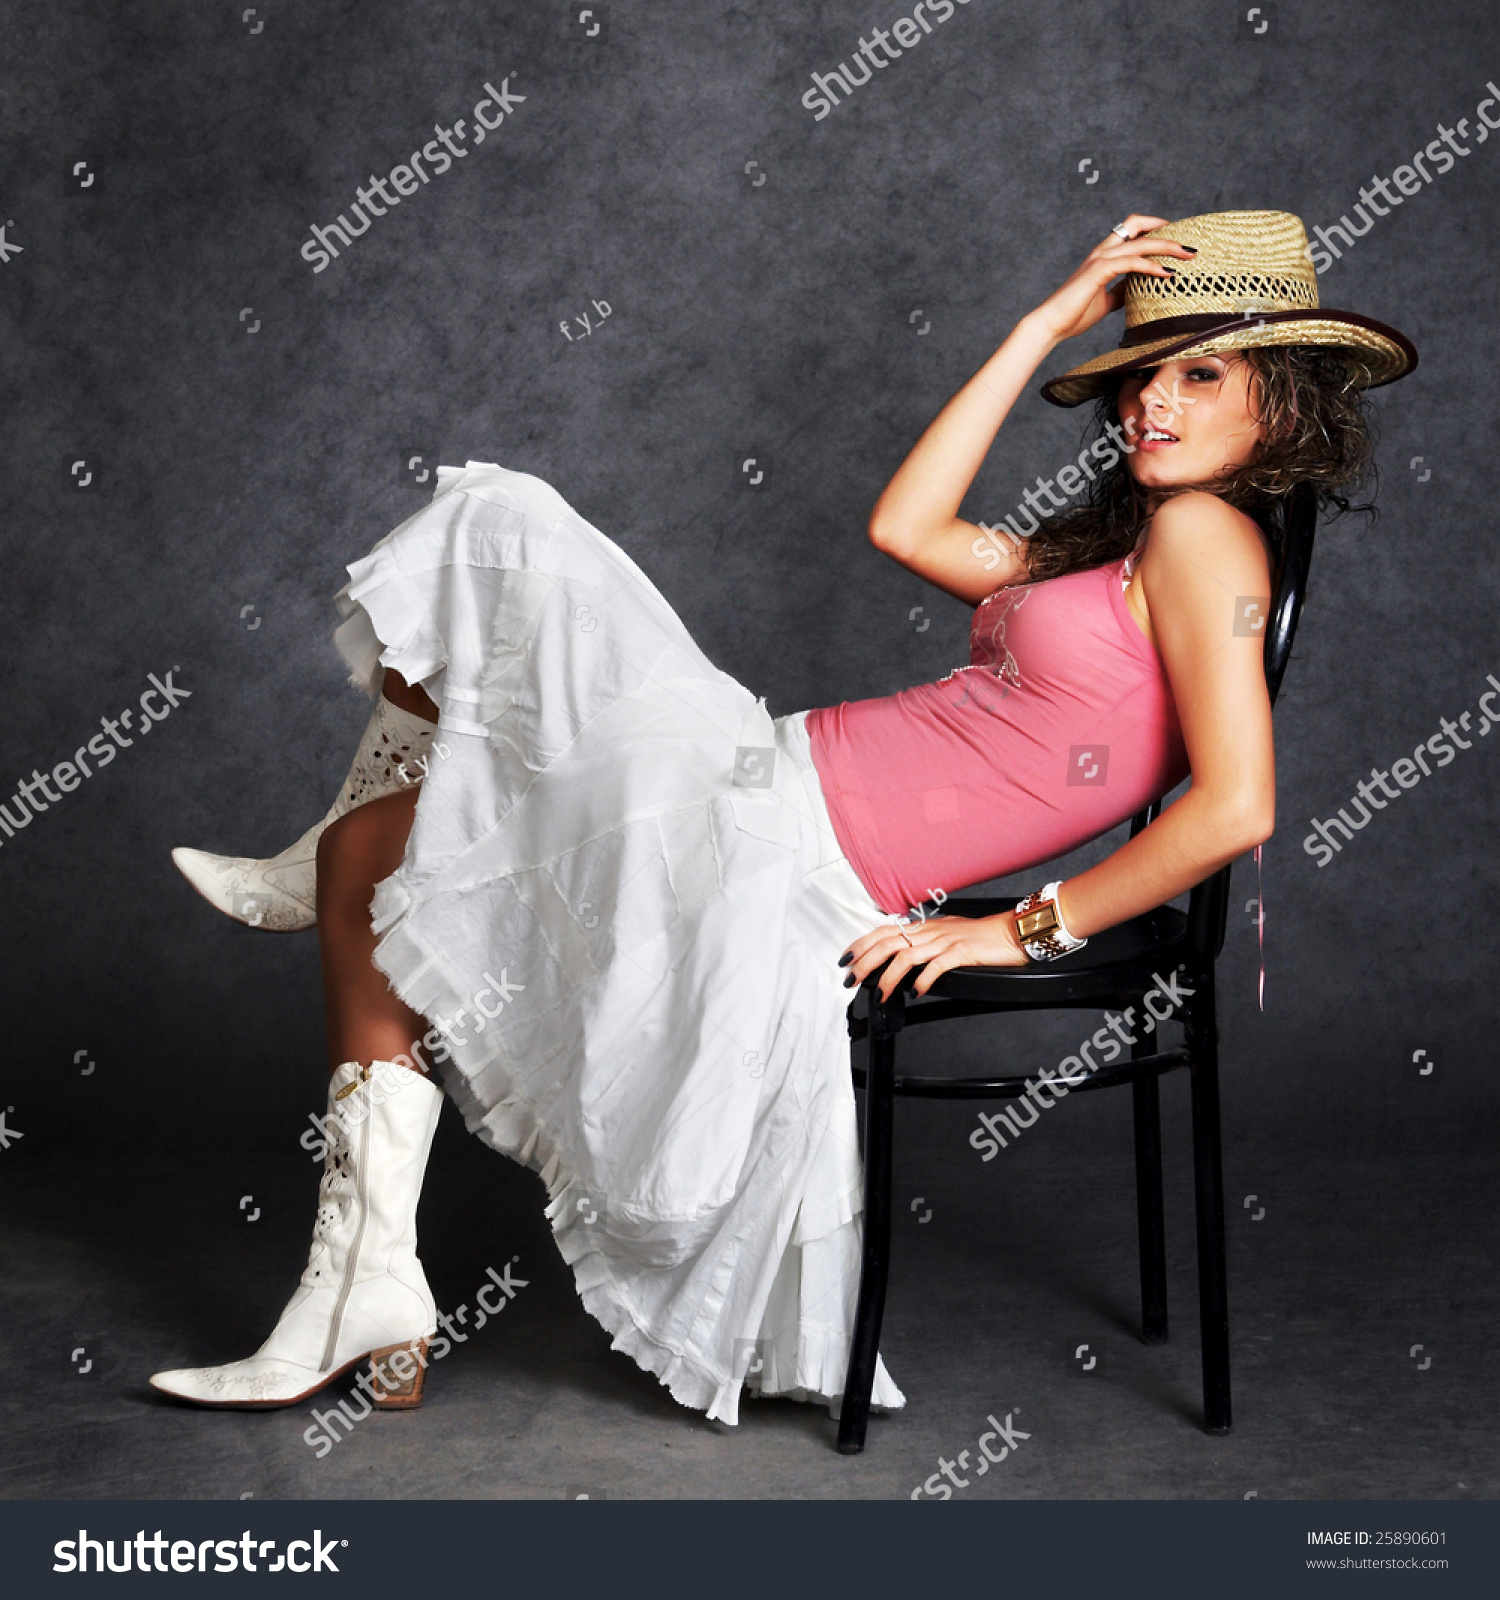 Super Sexy Cowgirl Boots Cowboy Hat Stock Photo 25890601 ...